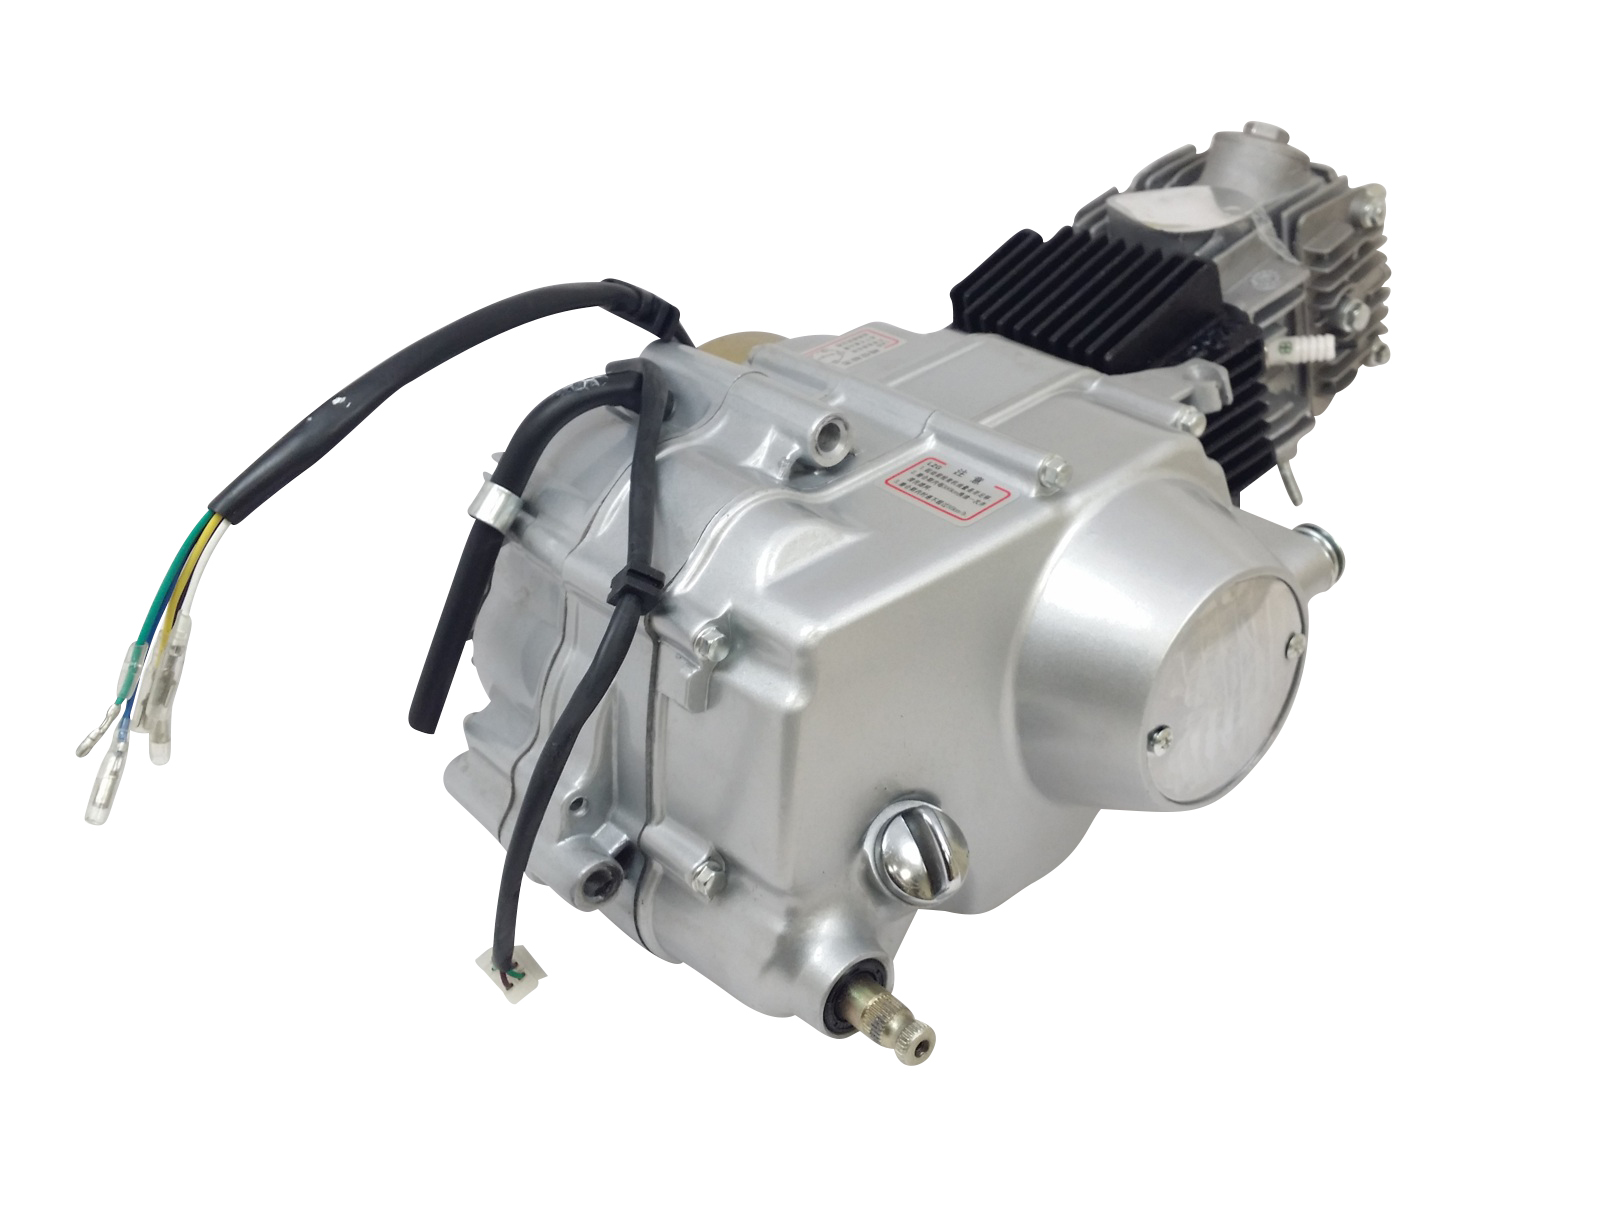 125cc lifan engine service manual